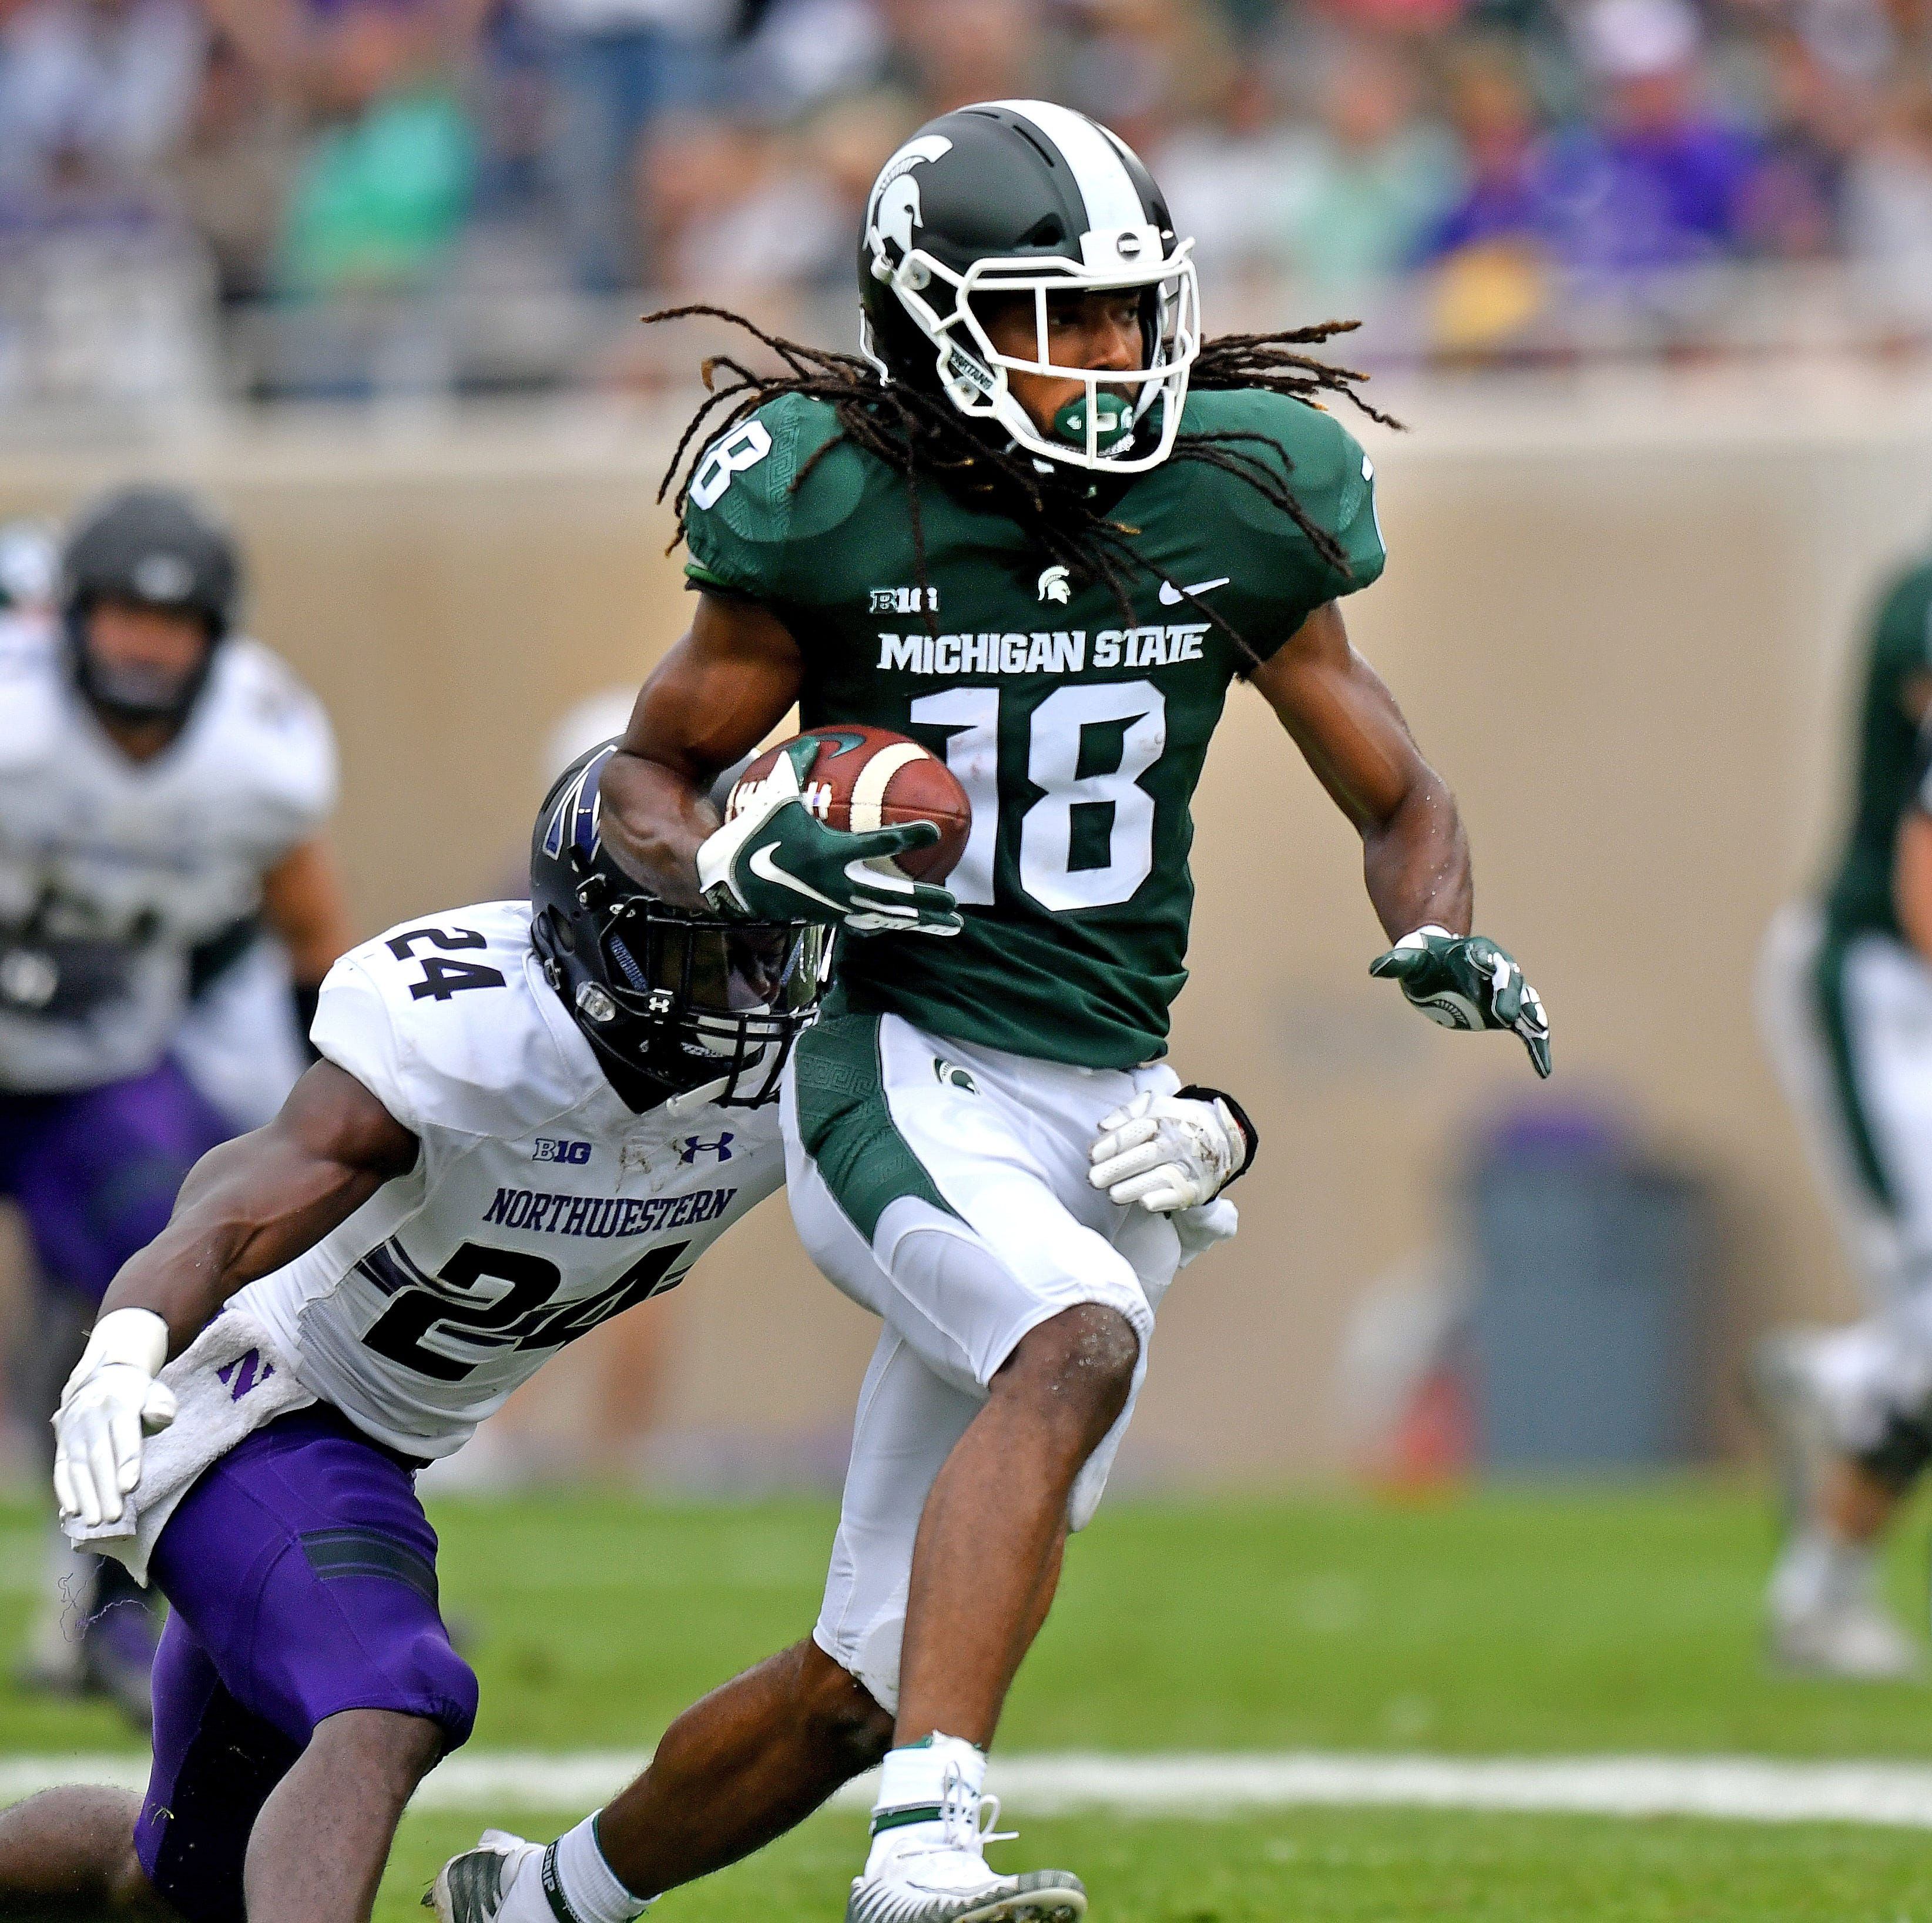 MSU's Davis passed over in NFL Draft, signs with Chiefs